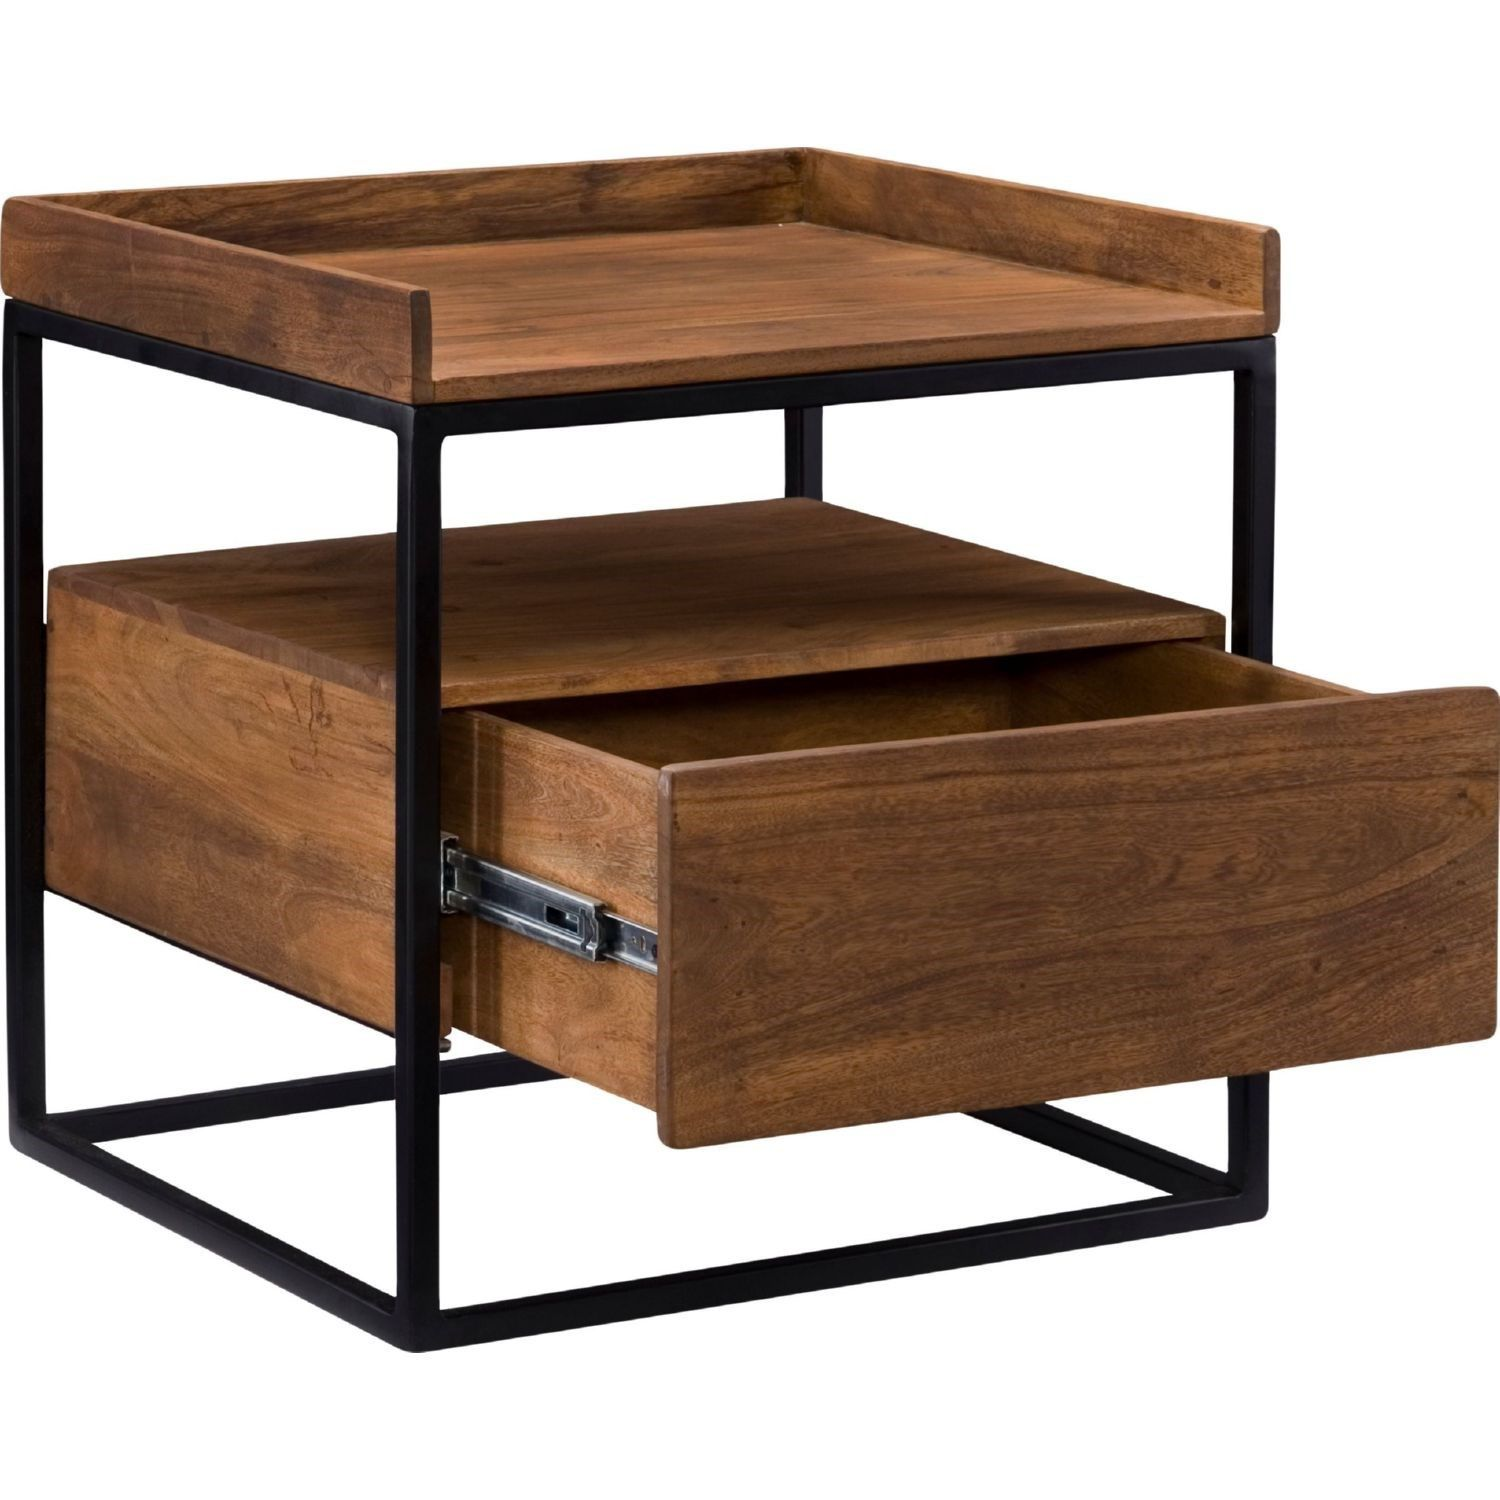 Moe S Home Collection Lx 1025 03 Vancouver Side Table In Light